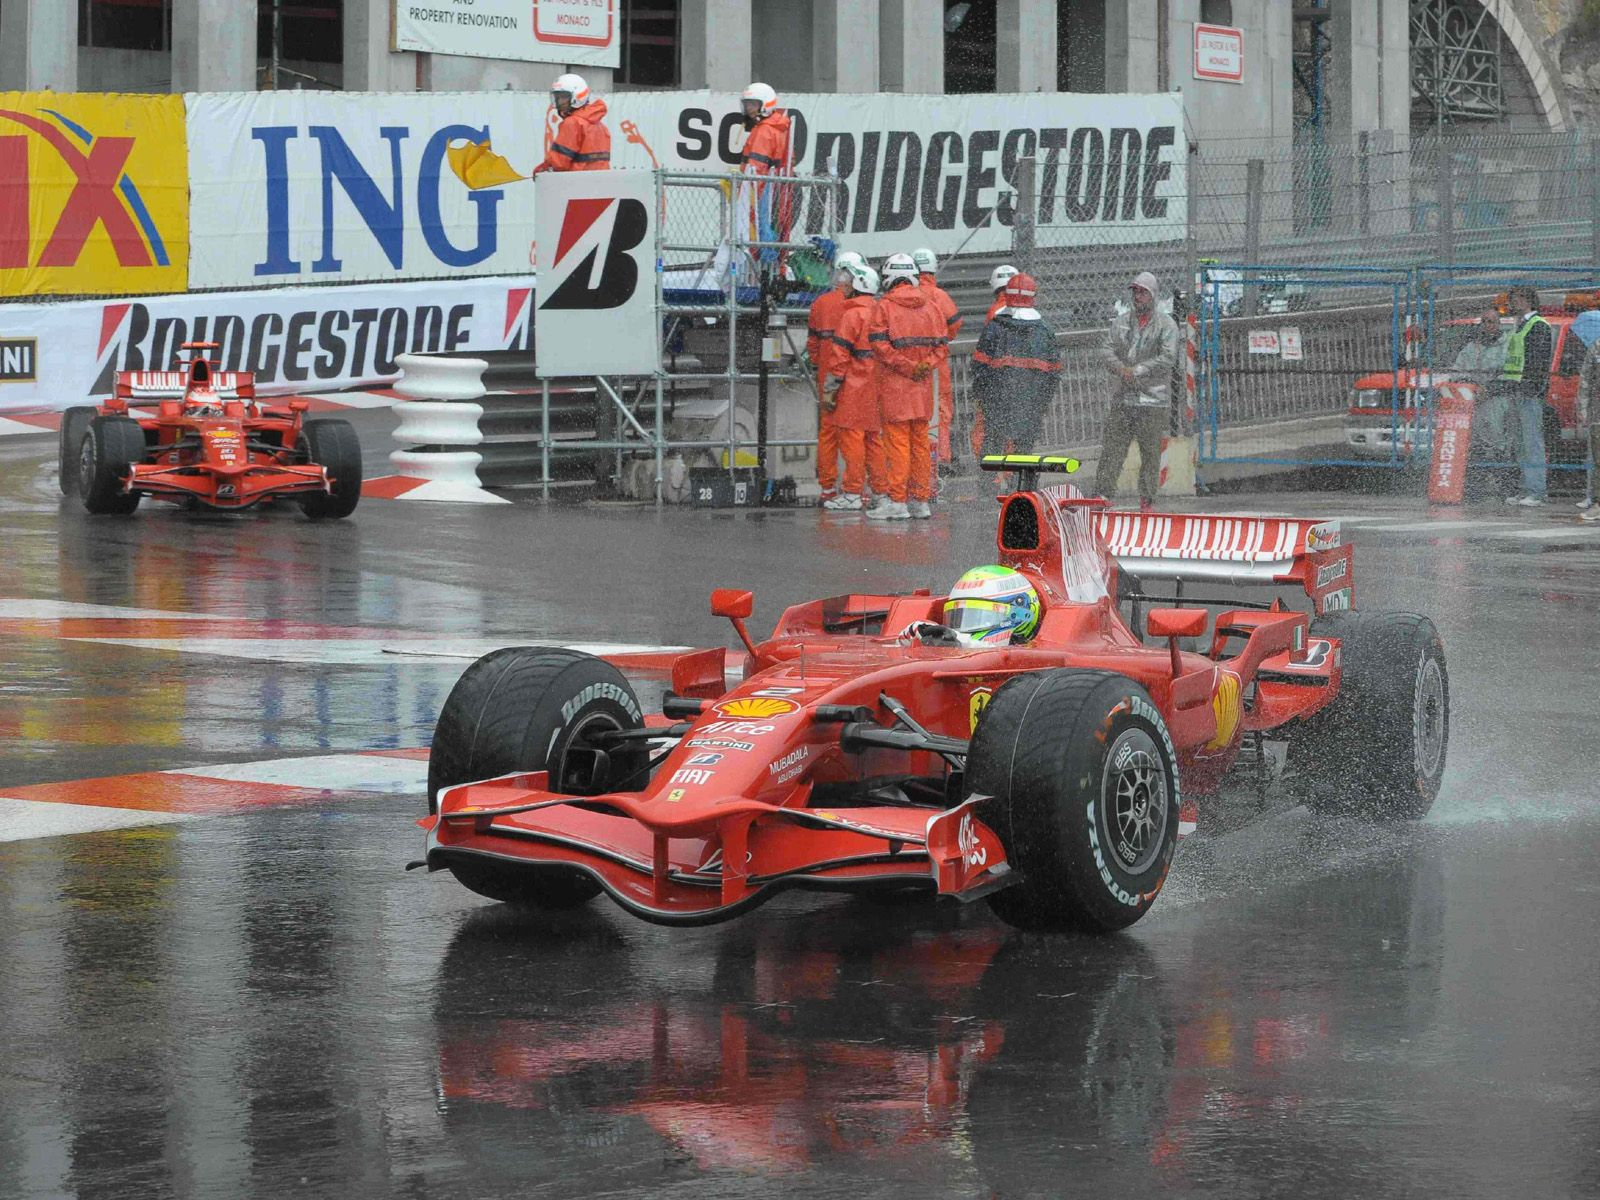 Monaco Monte Carlo Circuit - Race. Formula 1 2008 | Raceing Cars/F1/Classic F1 | Pinterest